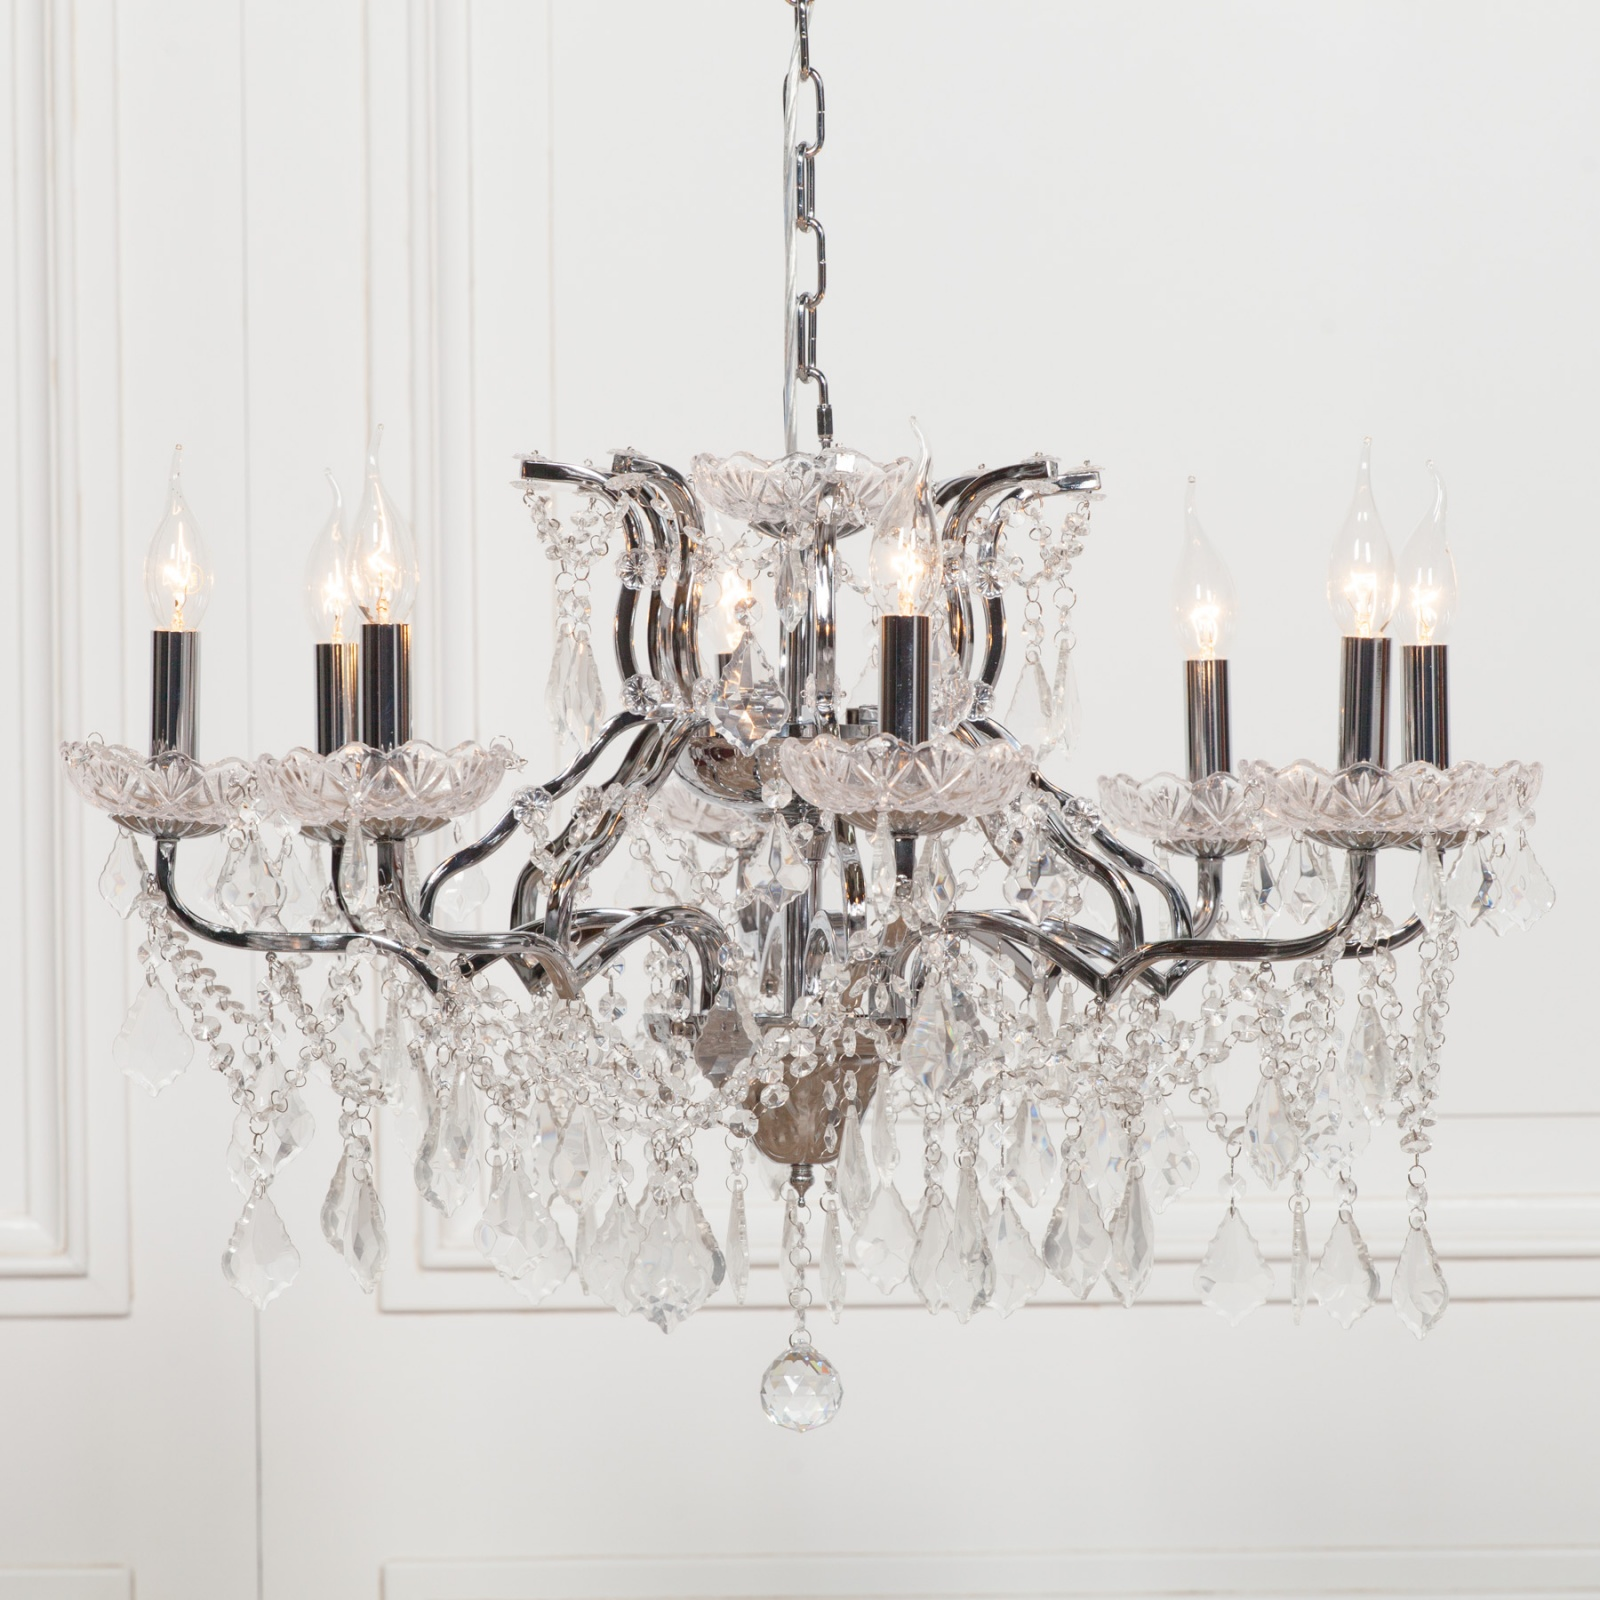 8 Branch Chrome Shallow Cut Glass Chandelier Furniture